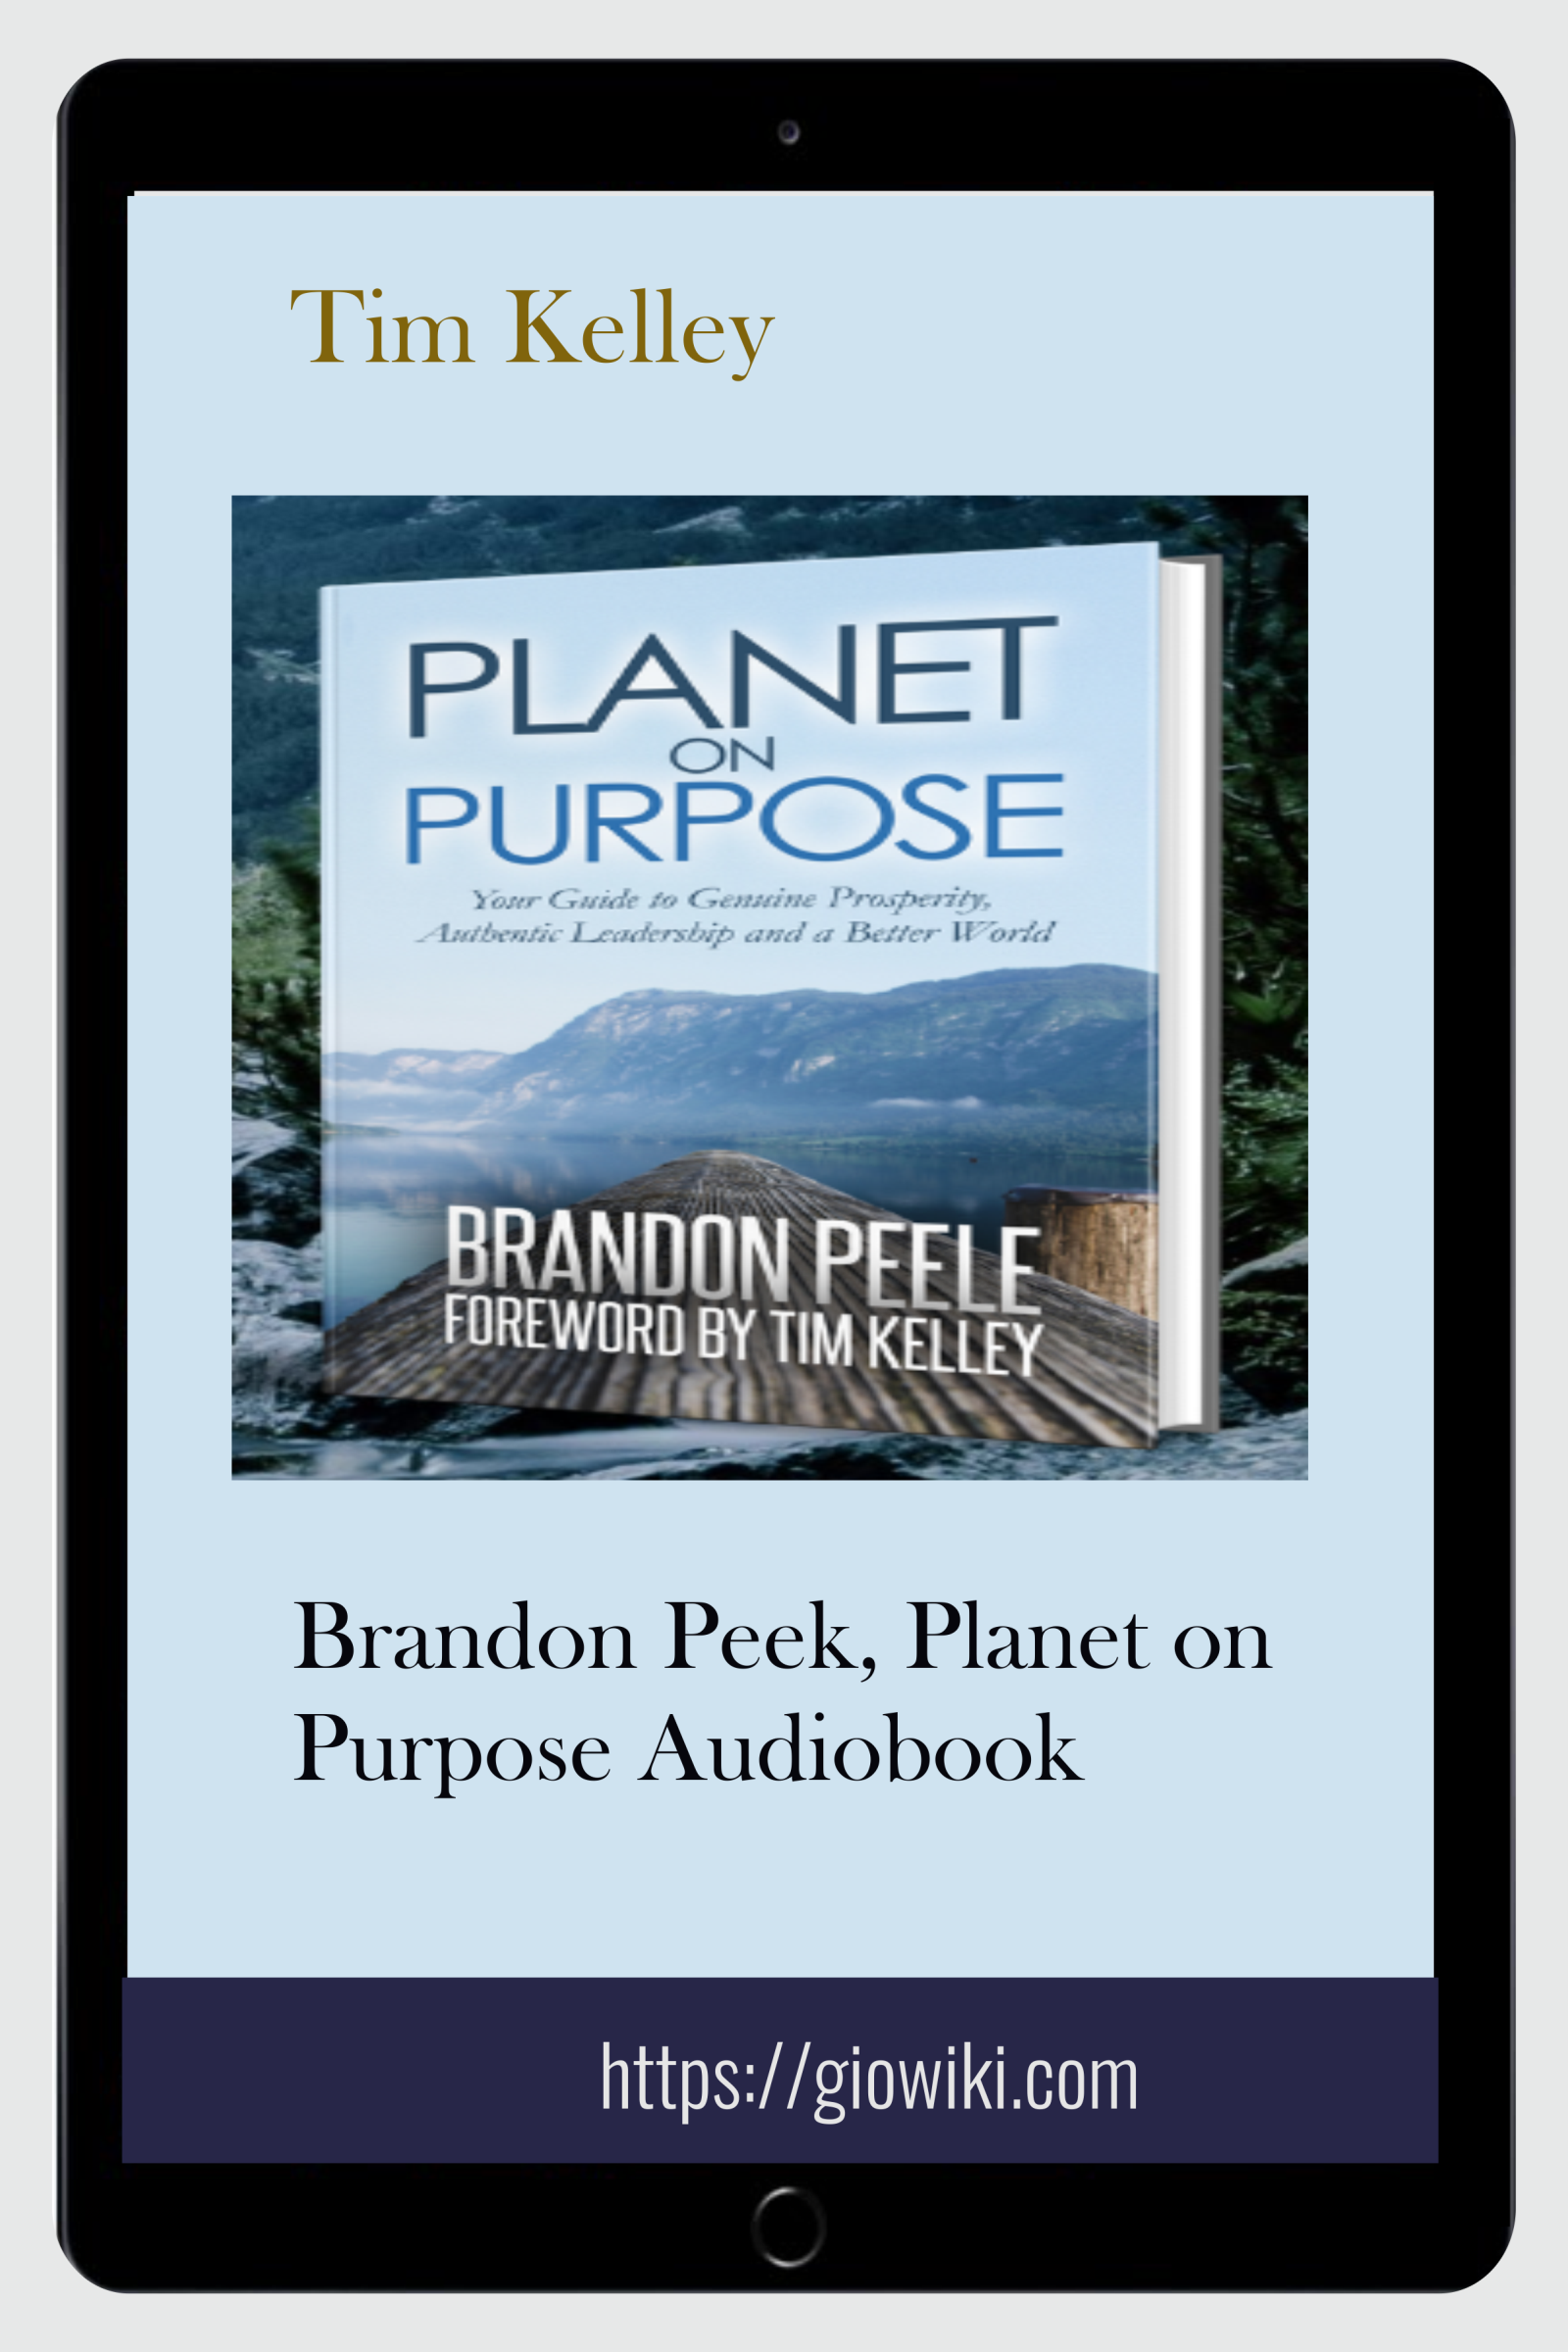 Brandon Peek, Planet on  Purpose Audiobook - Tim Kelley